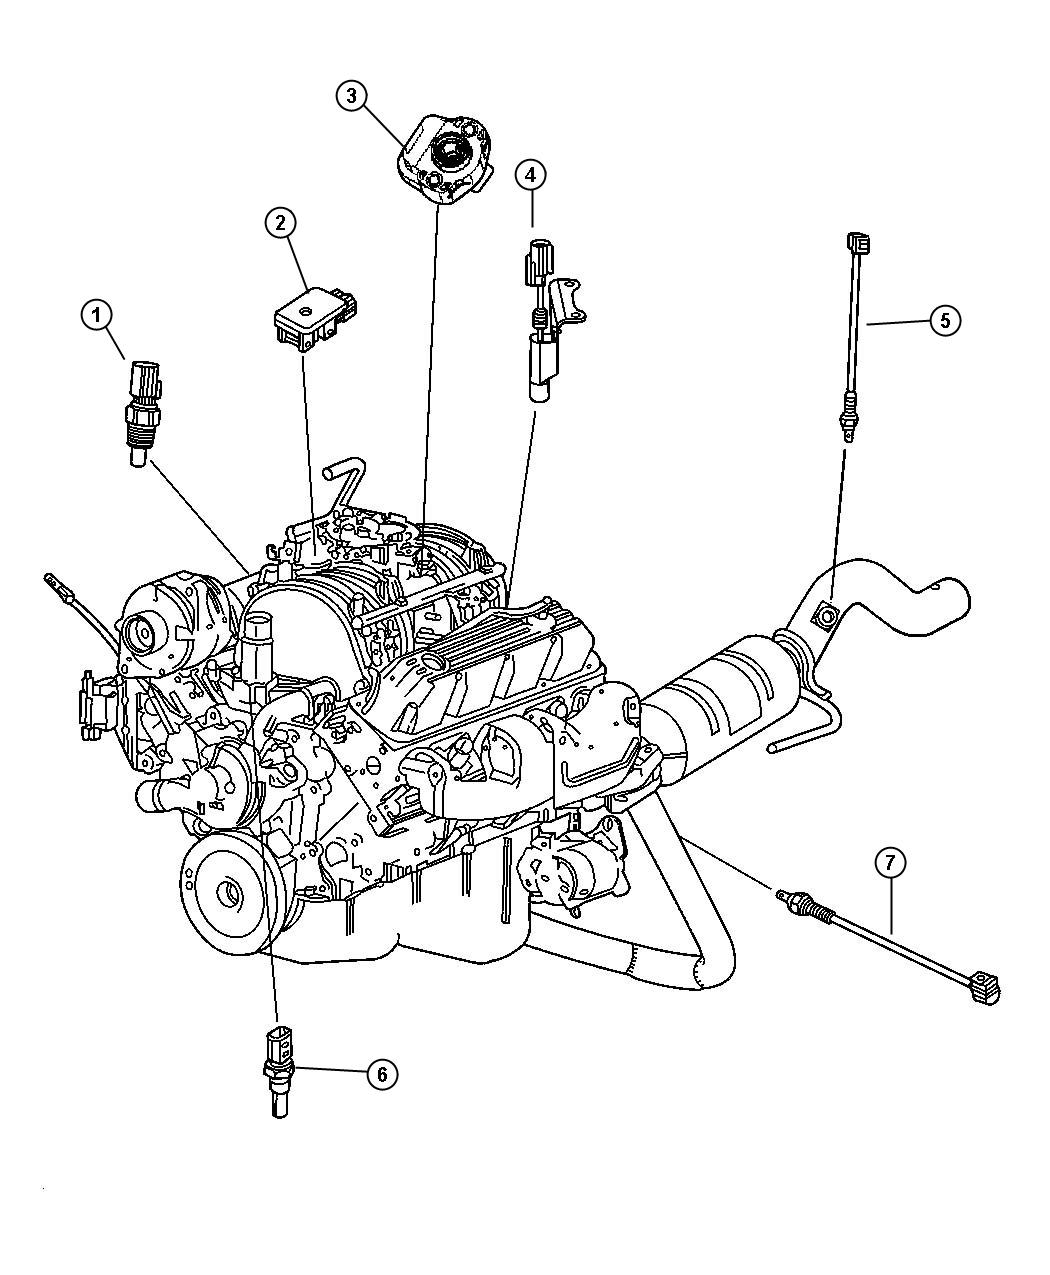 Cool mini cooper engine diagrams images best image wiring diagram